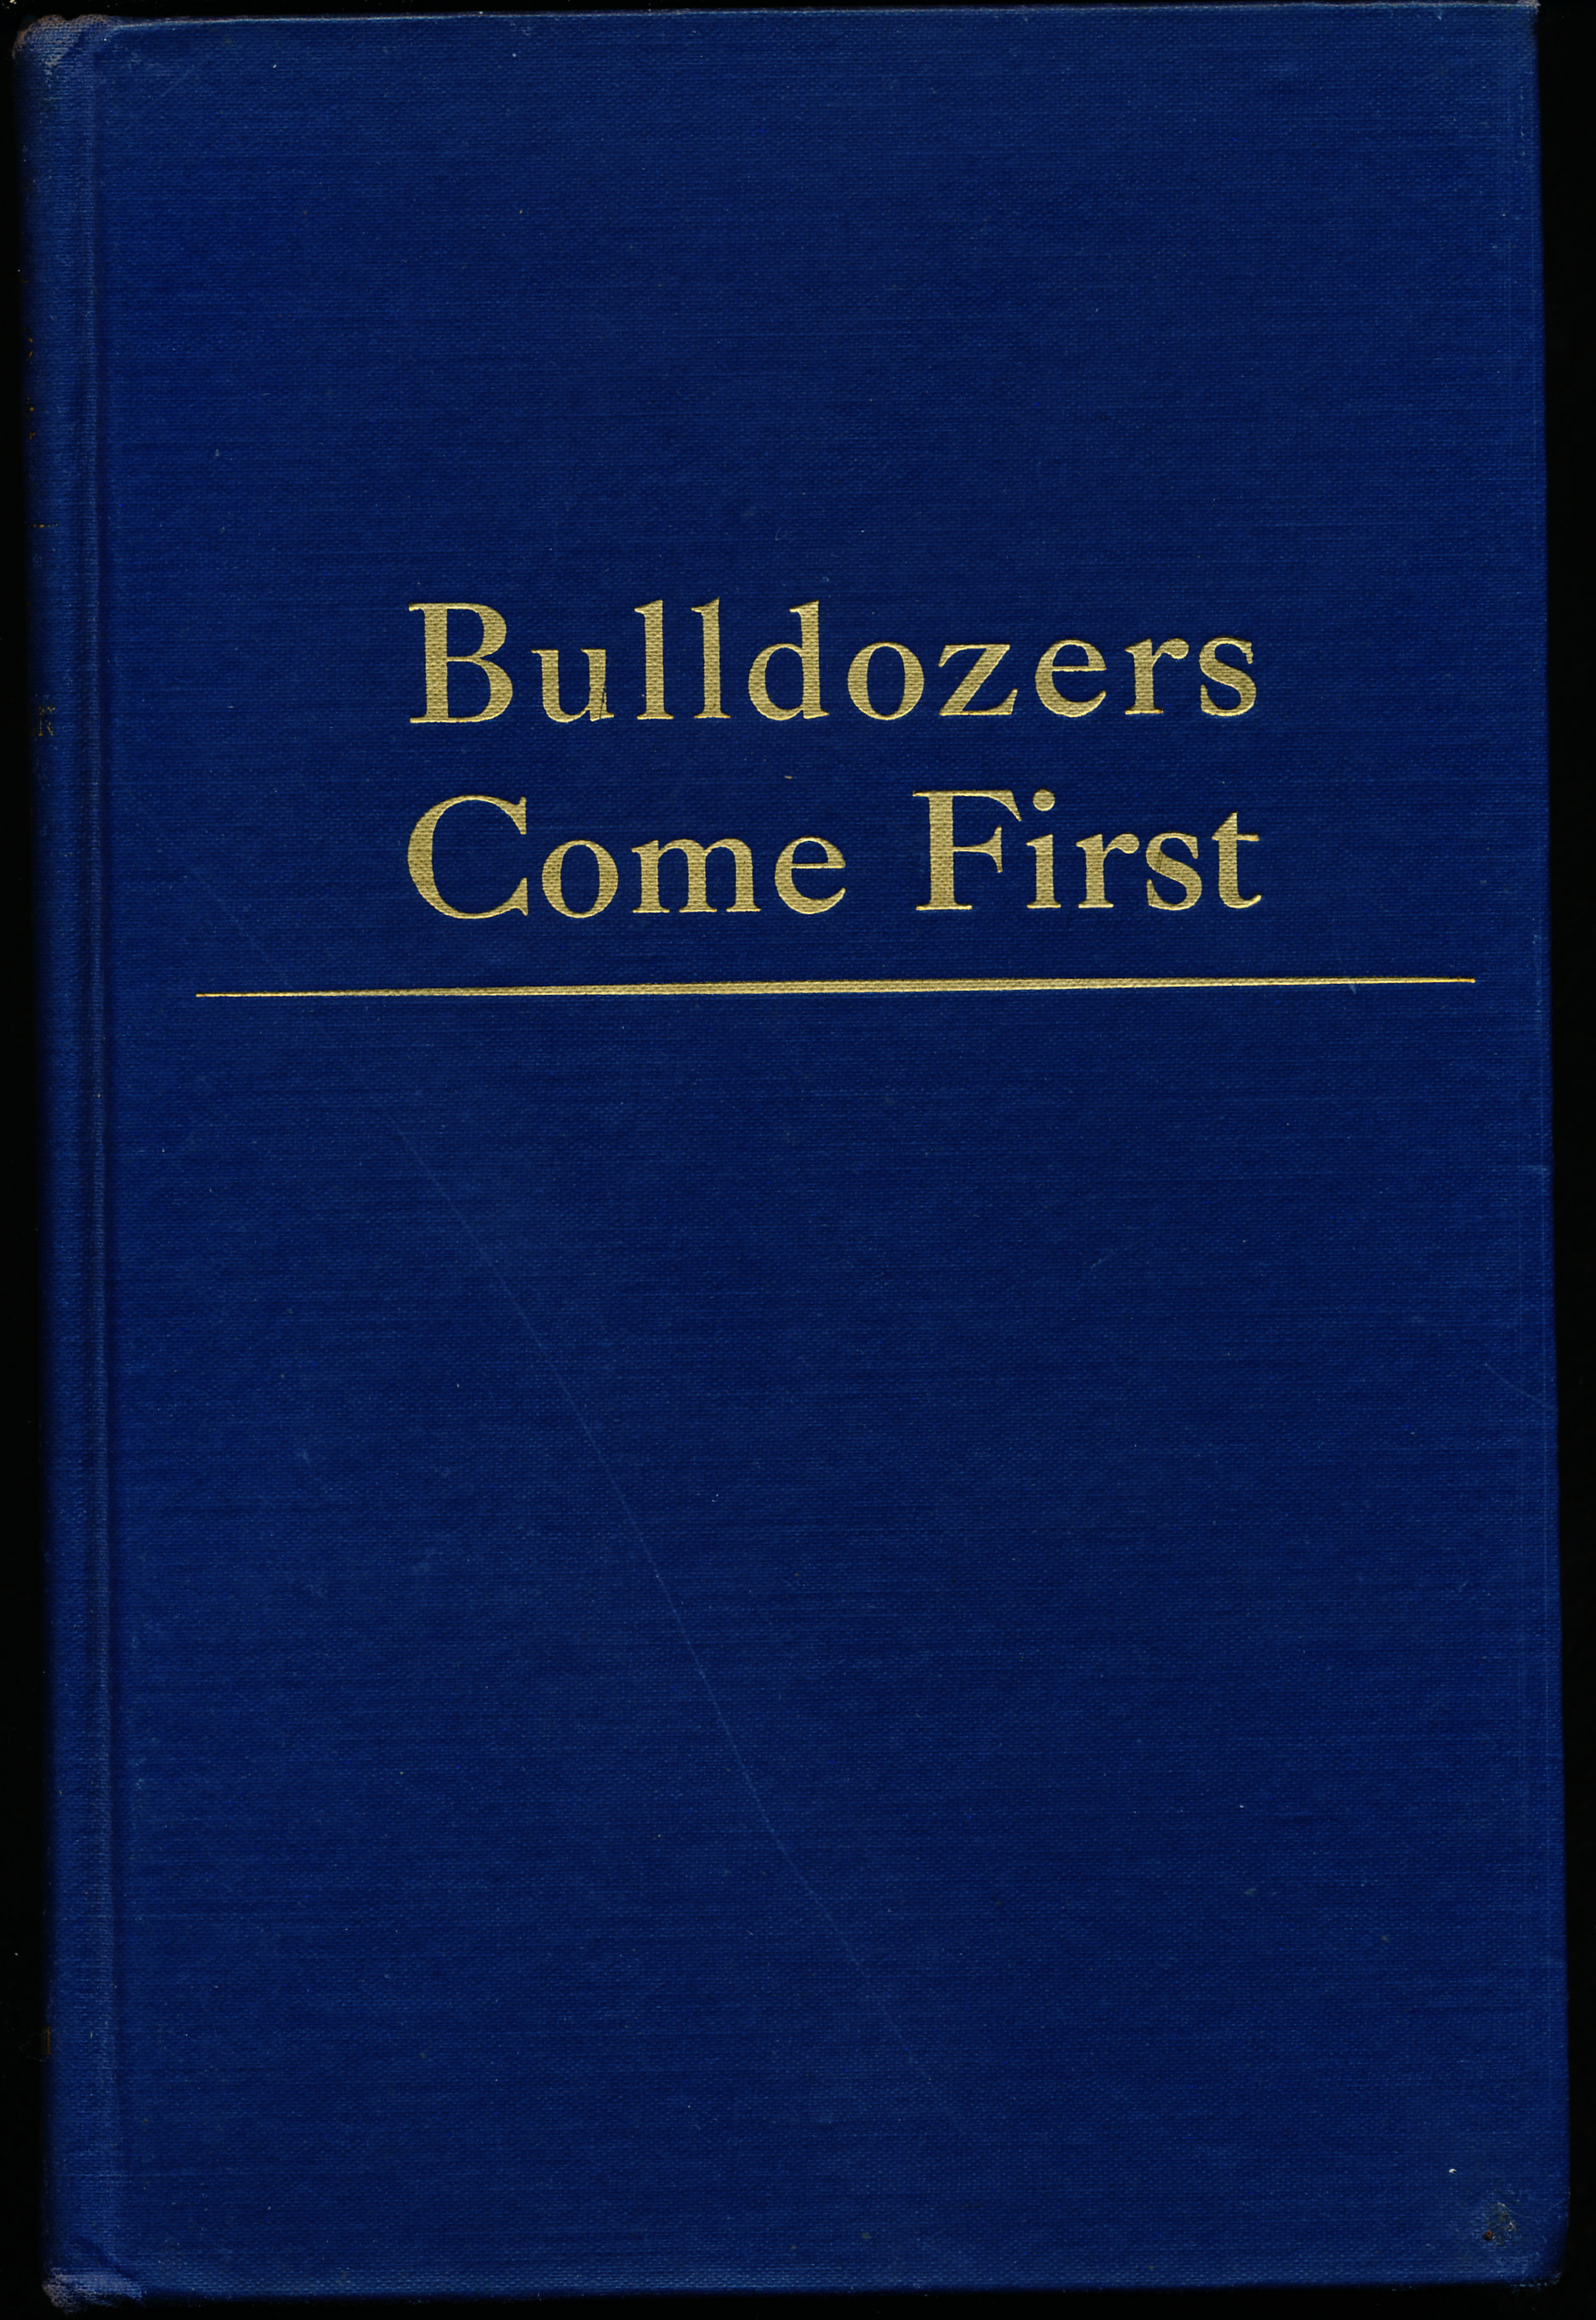 Image for BULLDOZERS COME FIRST. The Story of U.S. War Construction in Foreign Lands.